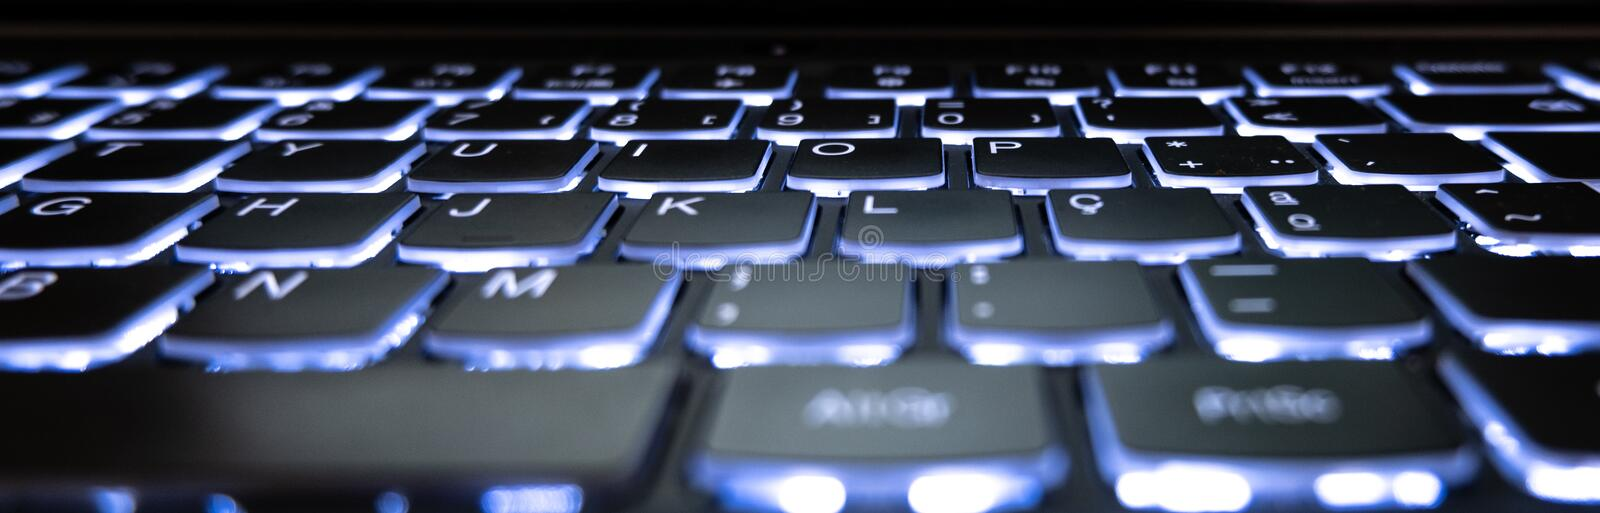 Gaming laptop computer keyboard with backlit keys. Low angle royalty free stock images